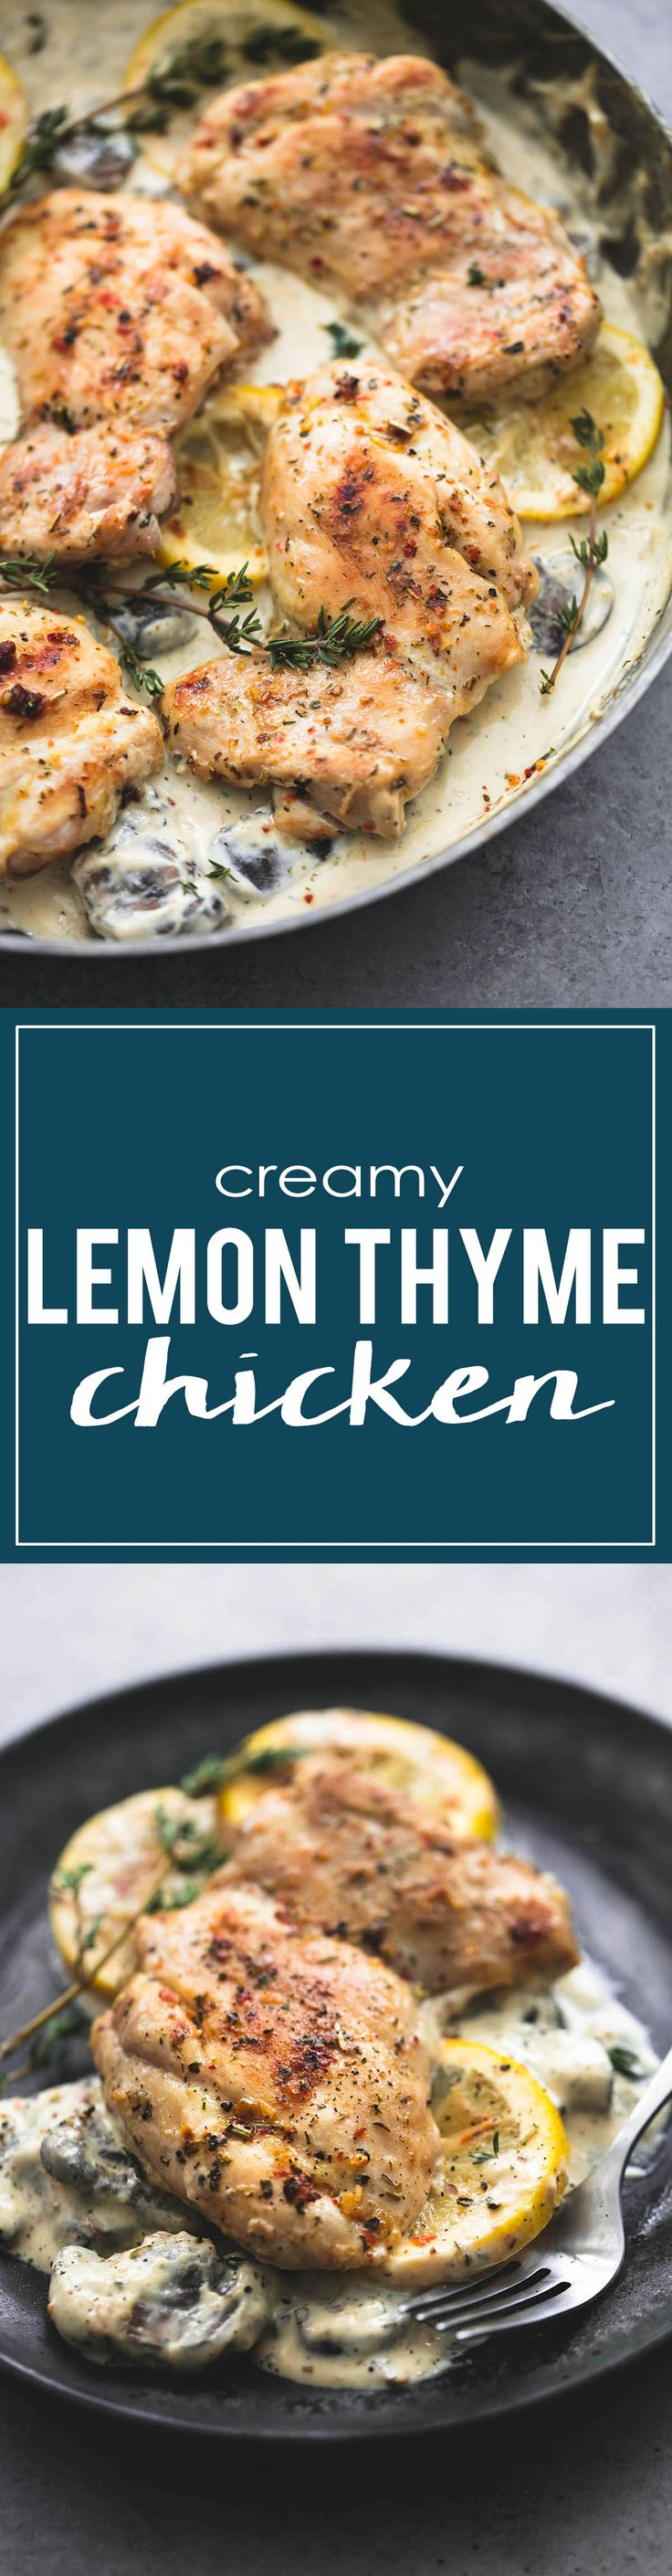 Family-favorite creamy lemon thyme chicken is full of flavor, easy to prepare, and will be on the table in just 30 minutes.